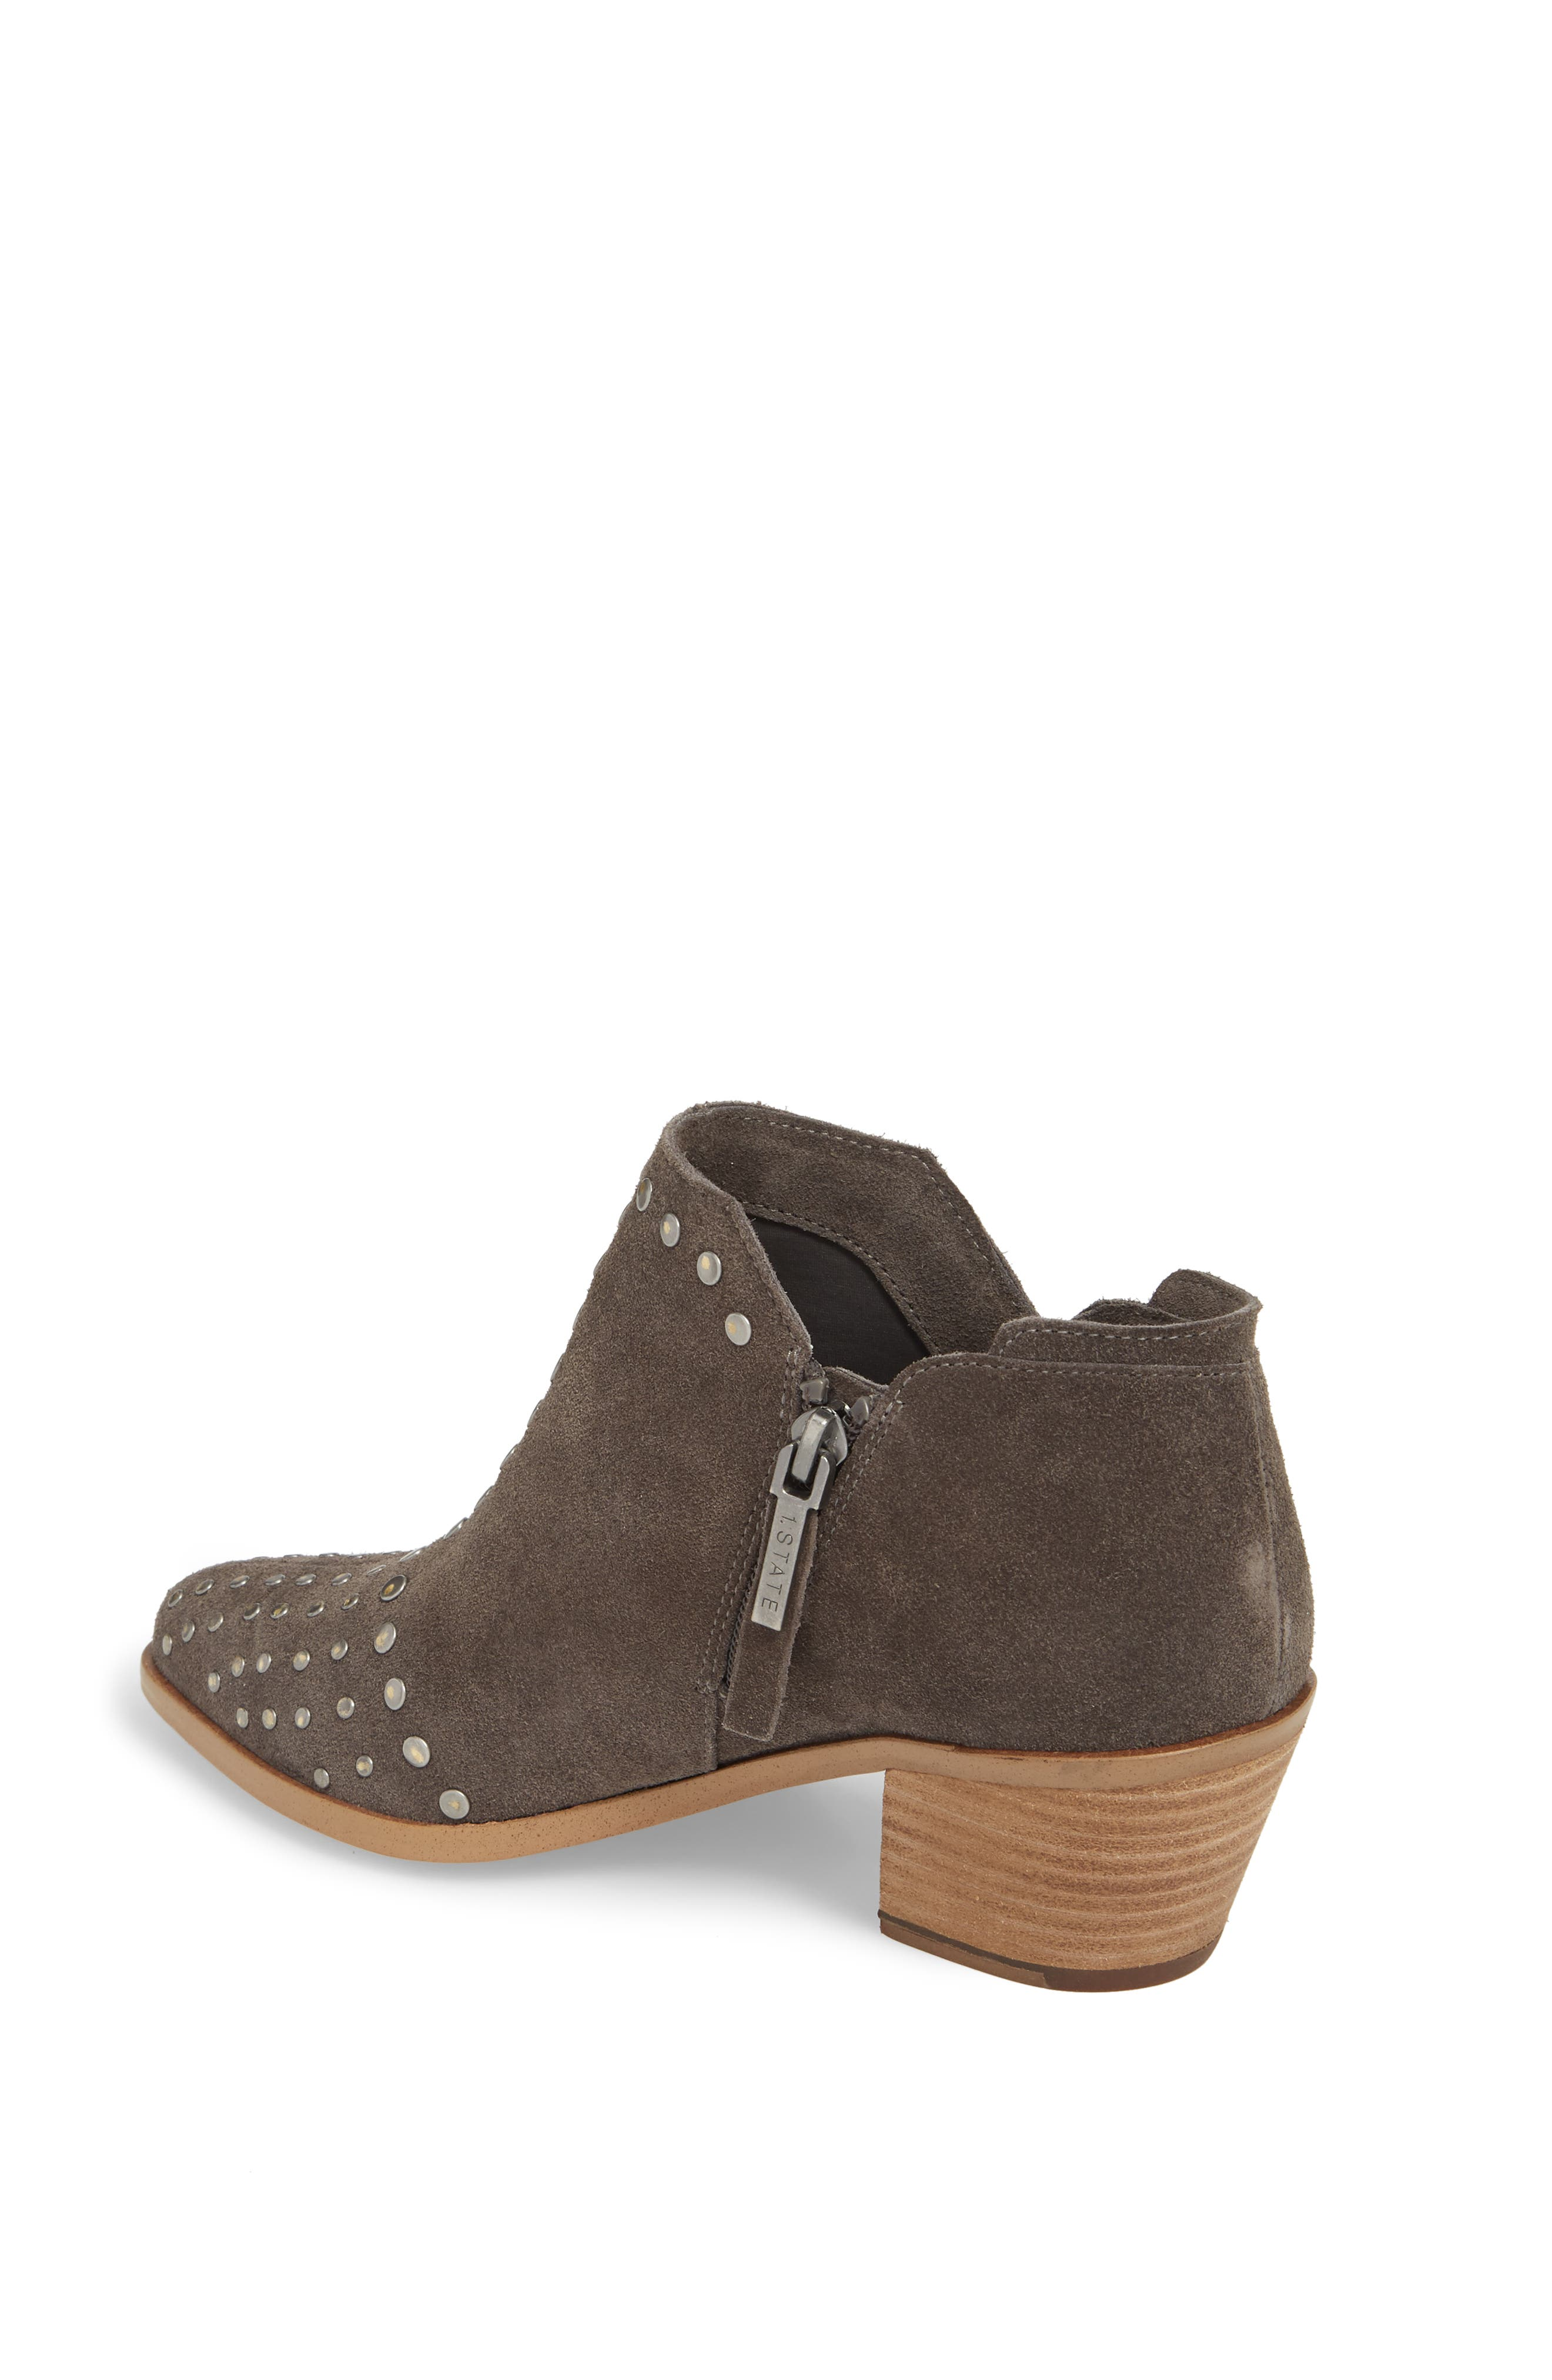 Loka Studded Bootie,                             Alternate thumbnail 2, color,                             CHARCOAL SUEDE